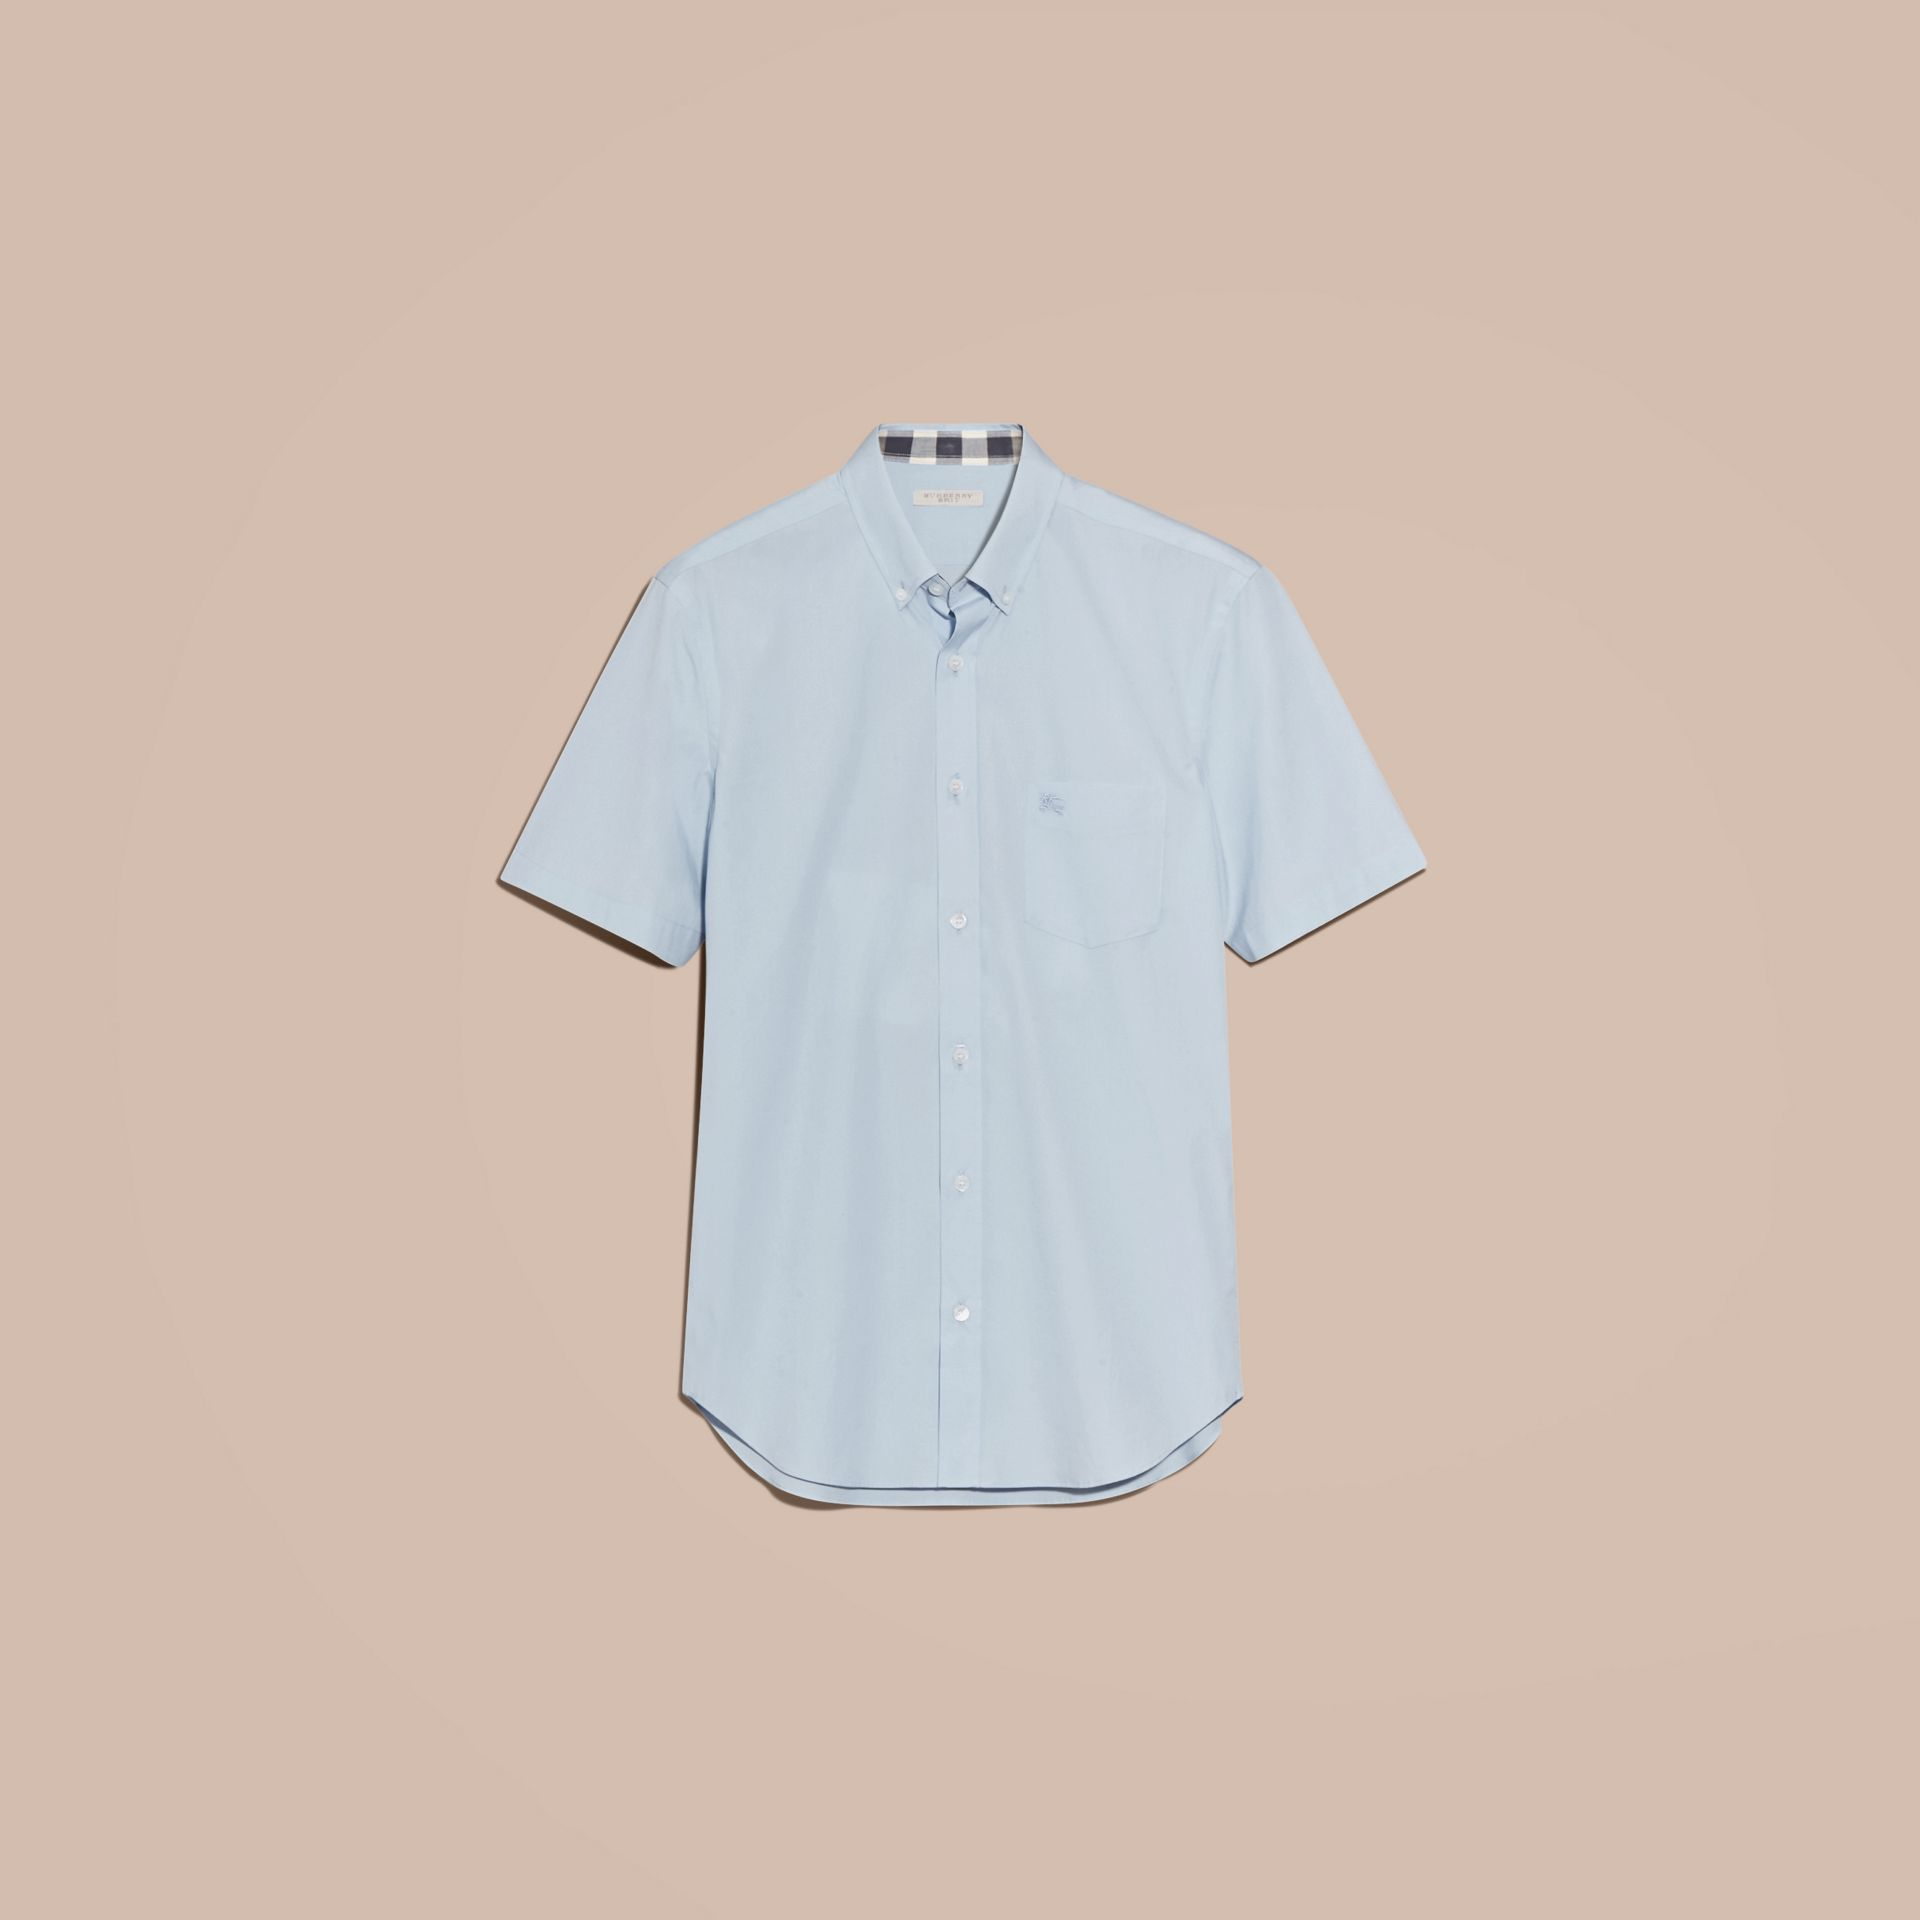 Short-sleeved Stretch Cotton Poplin Shirt in Pale Blue - Men | Burberry - gallery image 4